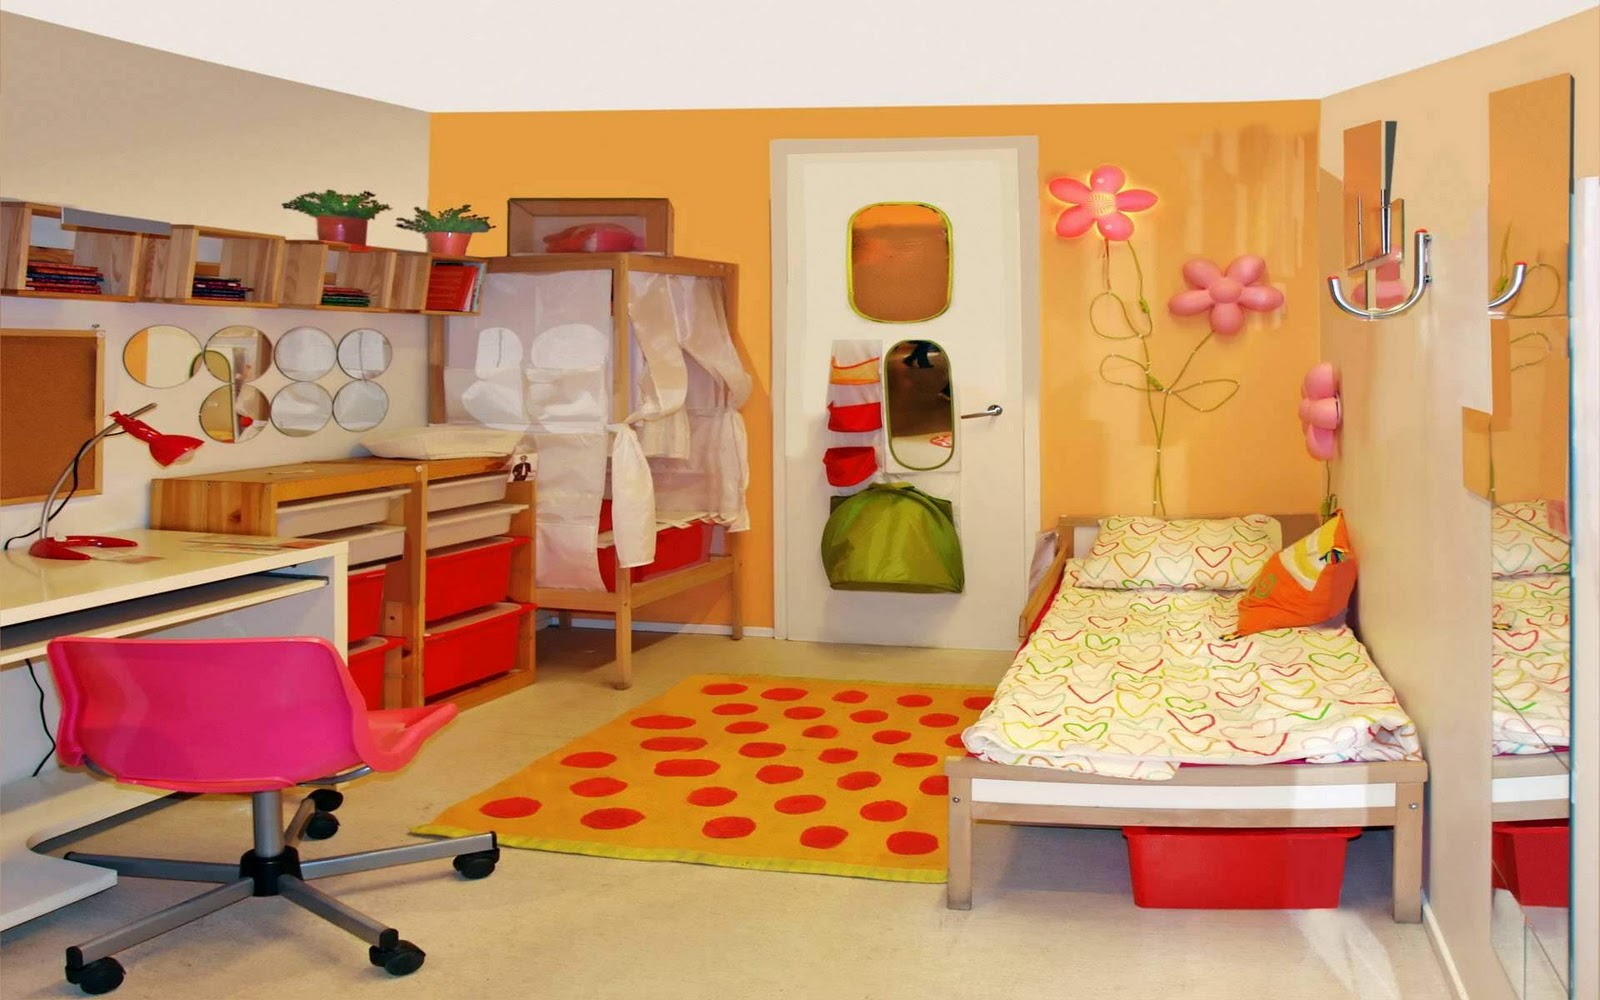 Wallpaper wallpaper ideas for kids room for Beautiful room design pics